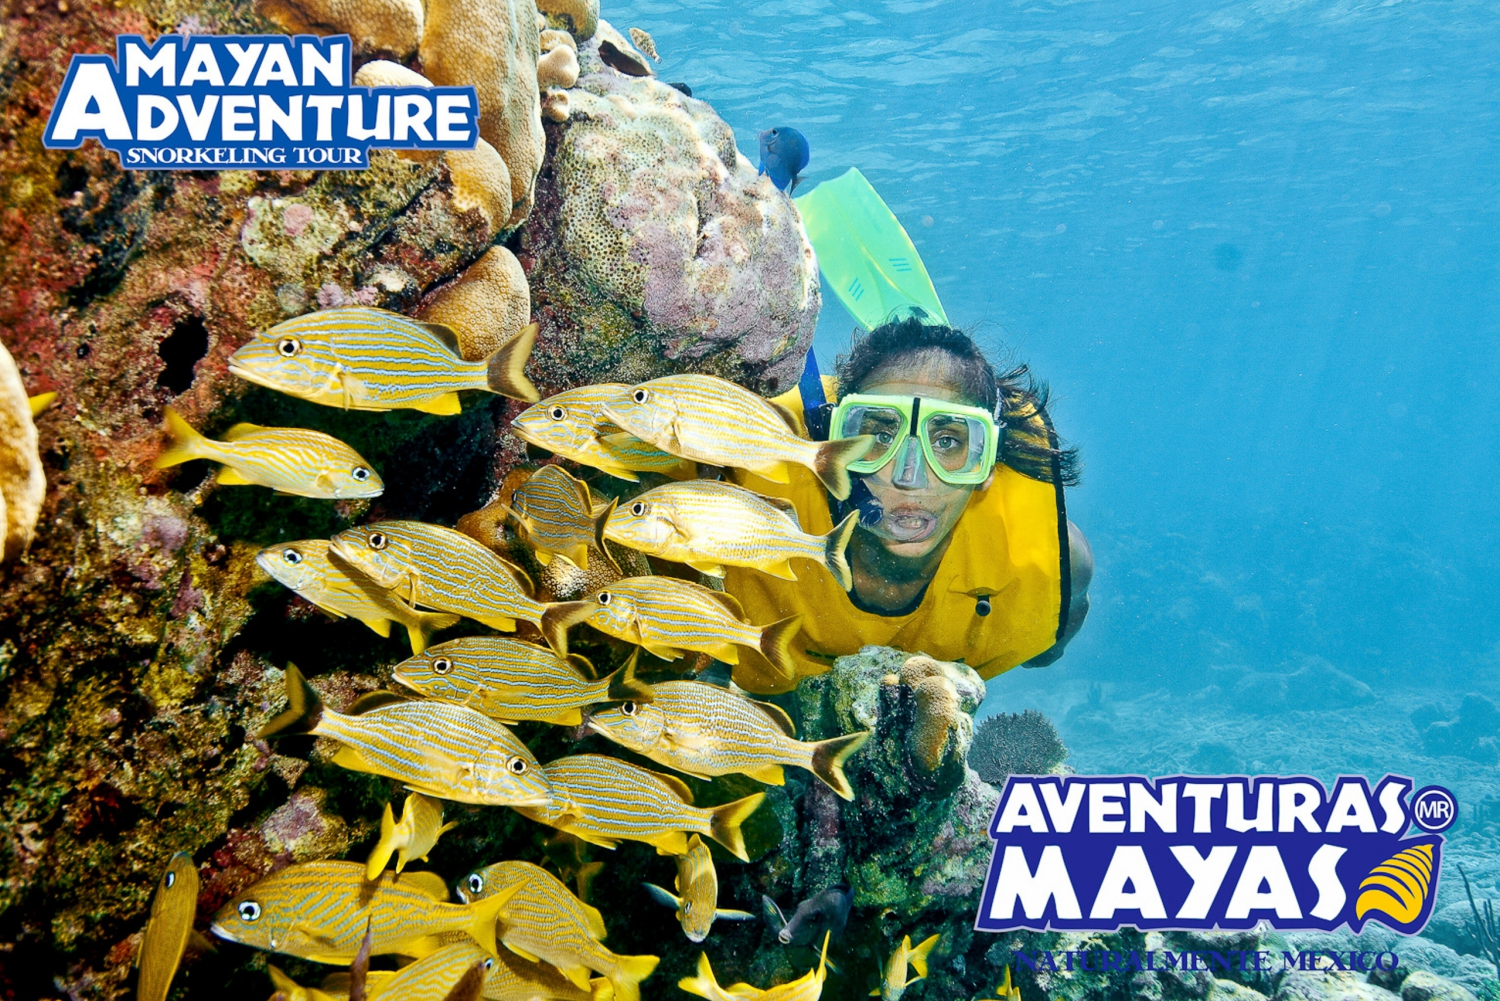 Mayan Adventure - 3 different snorkeling sites in one day!